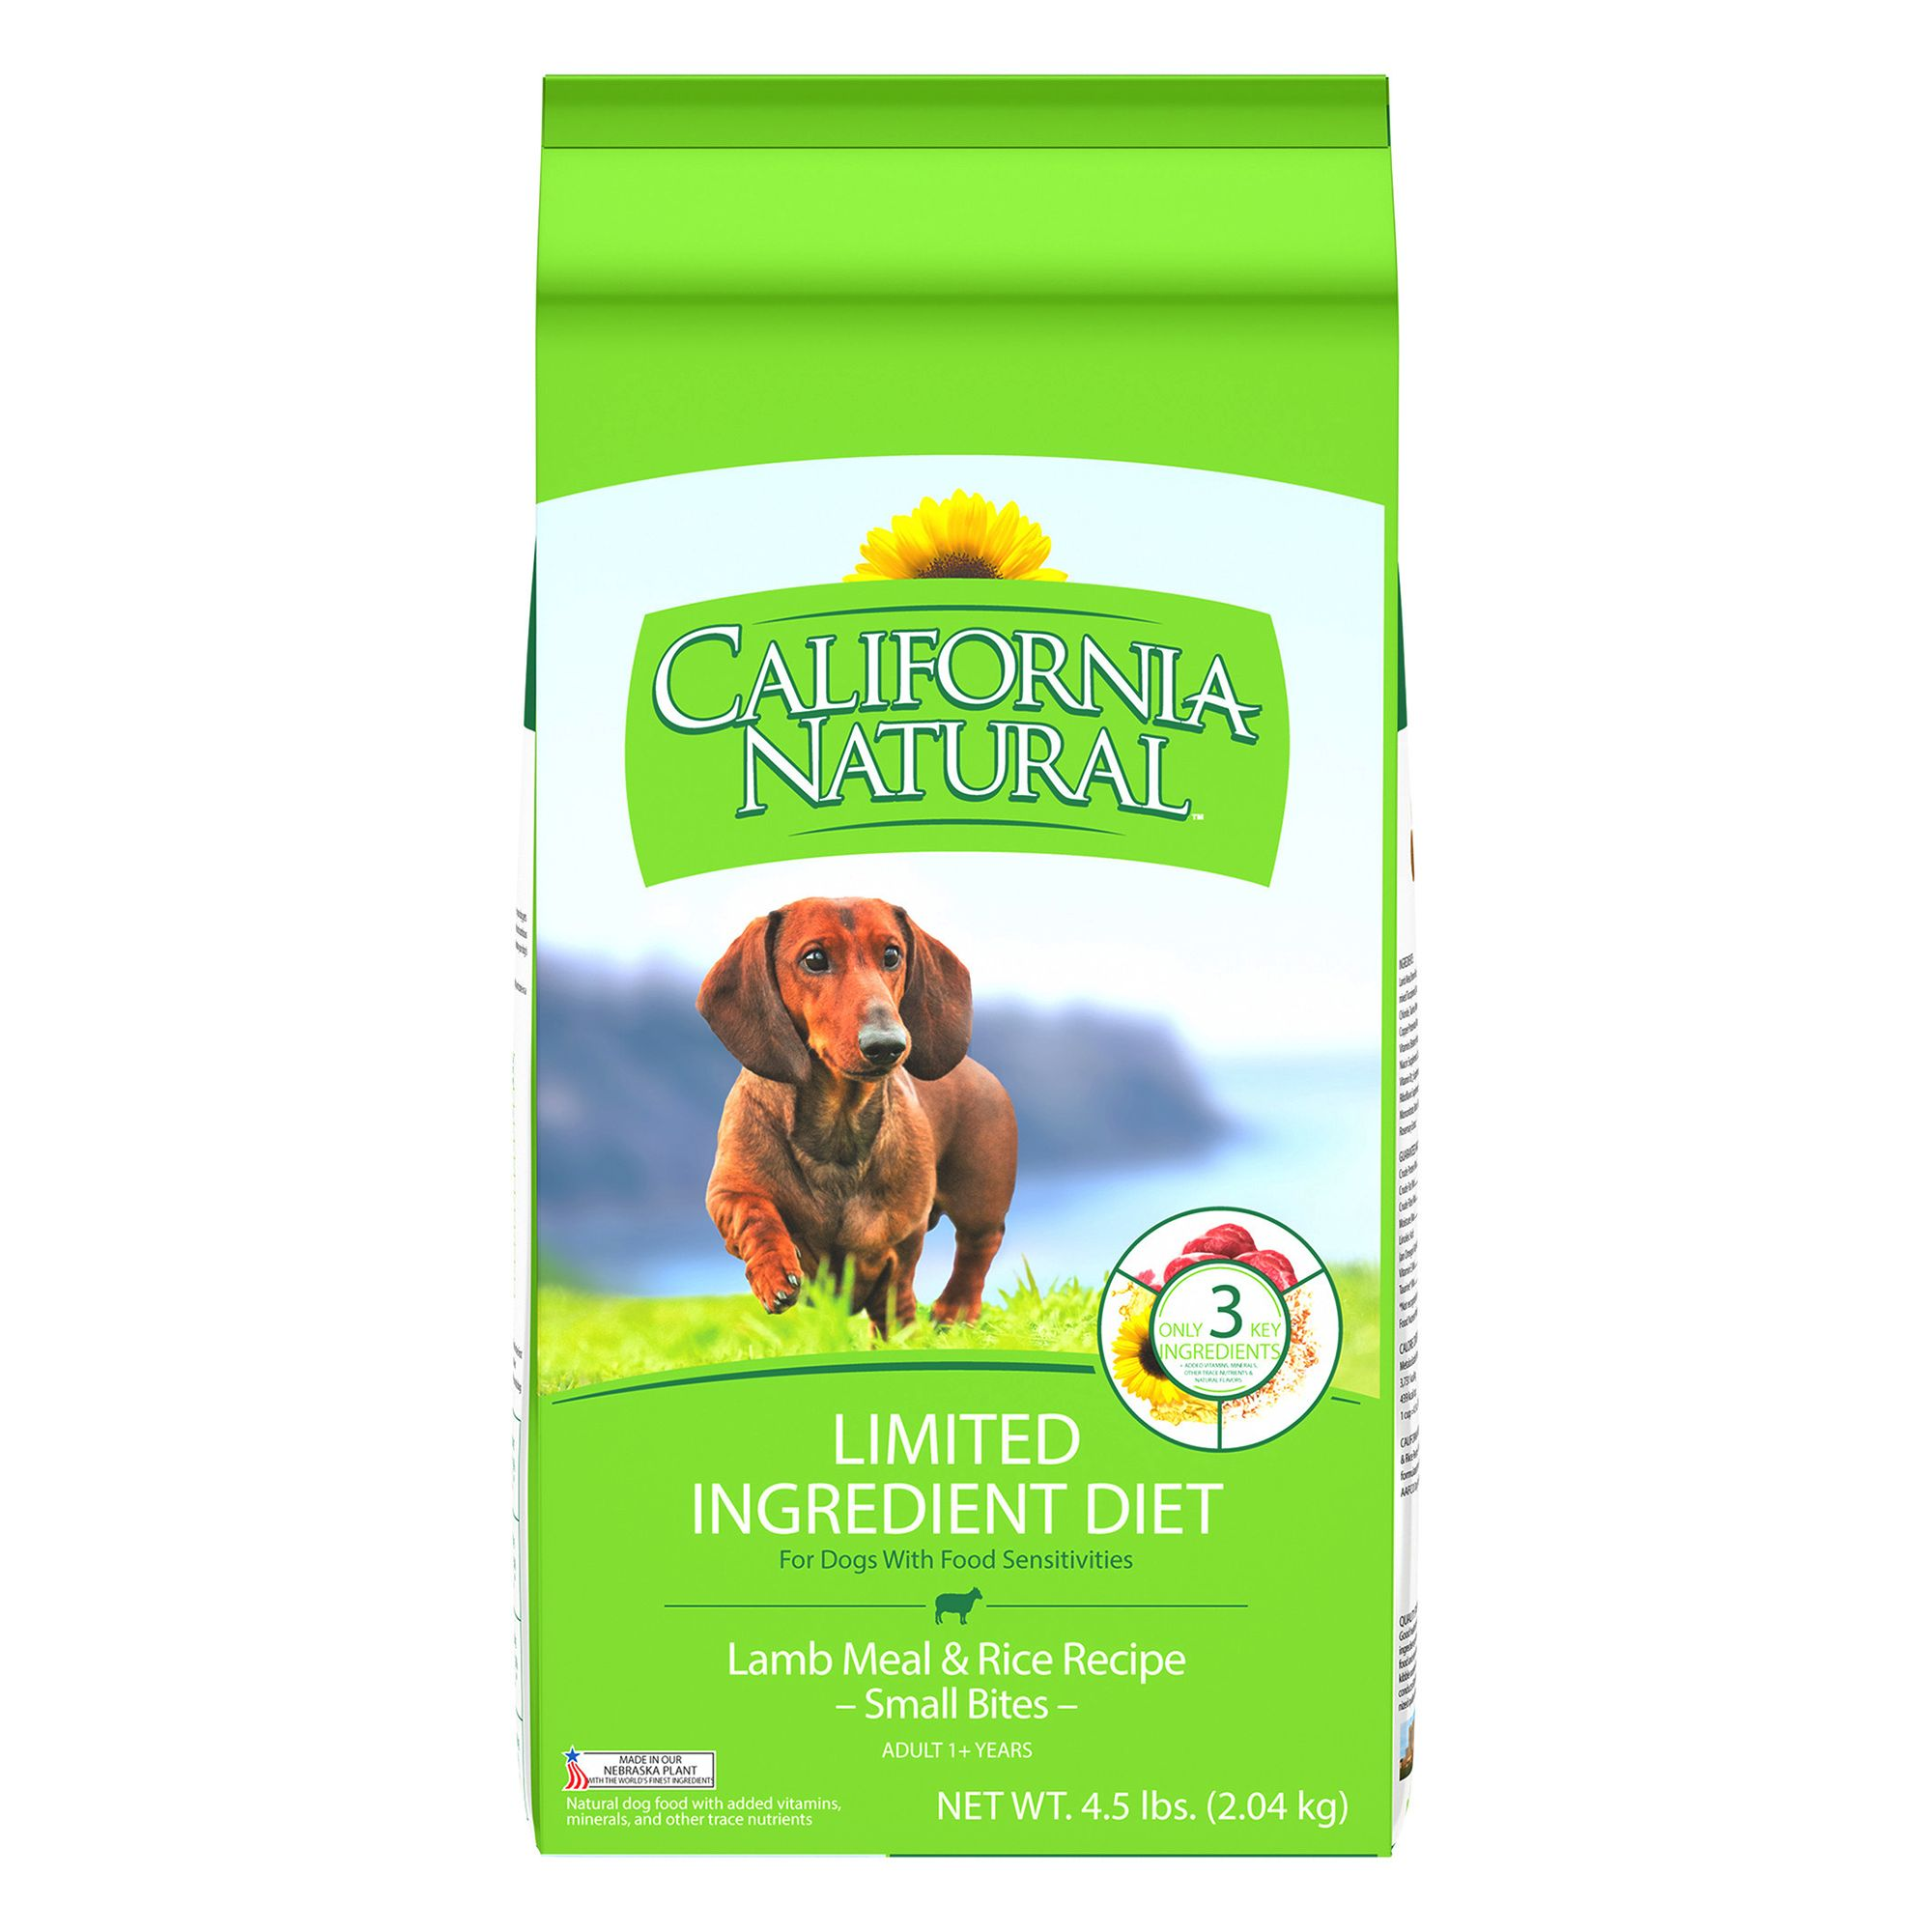 California Natural Dog Food Petco